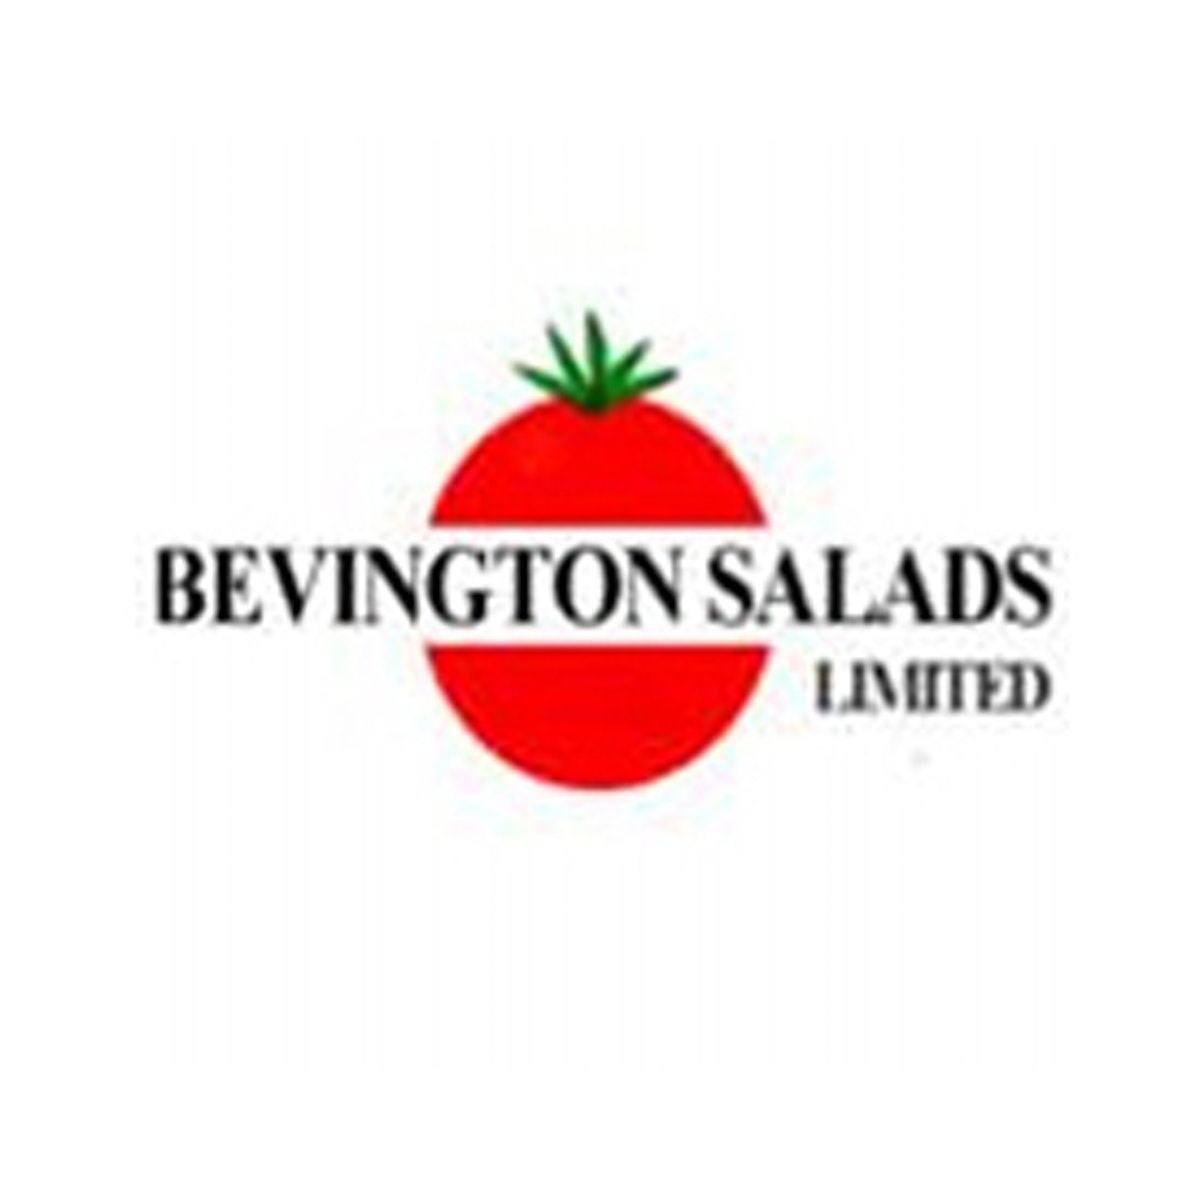 Bevington Salads